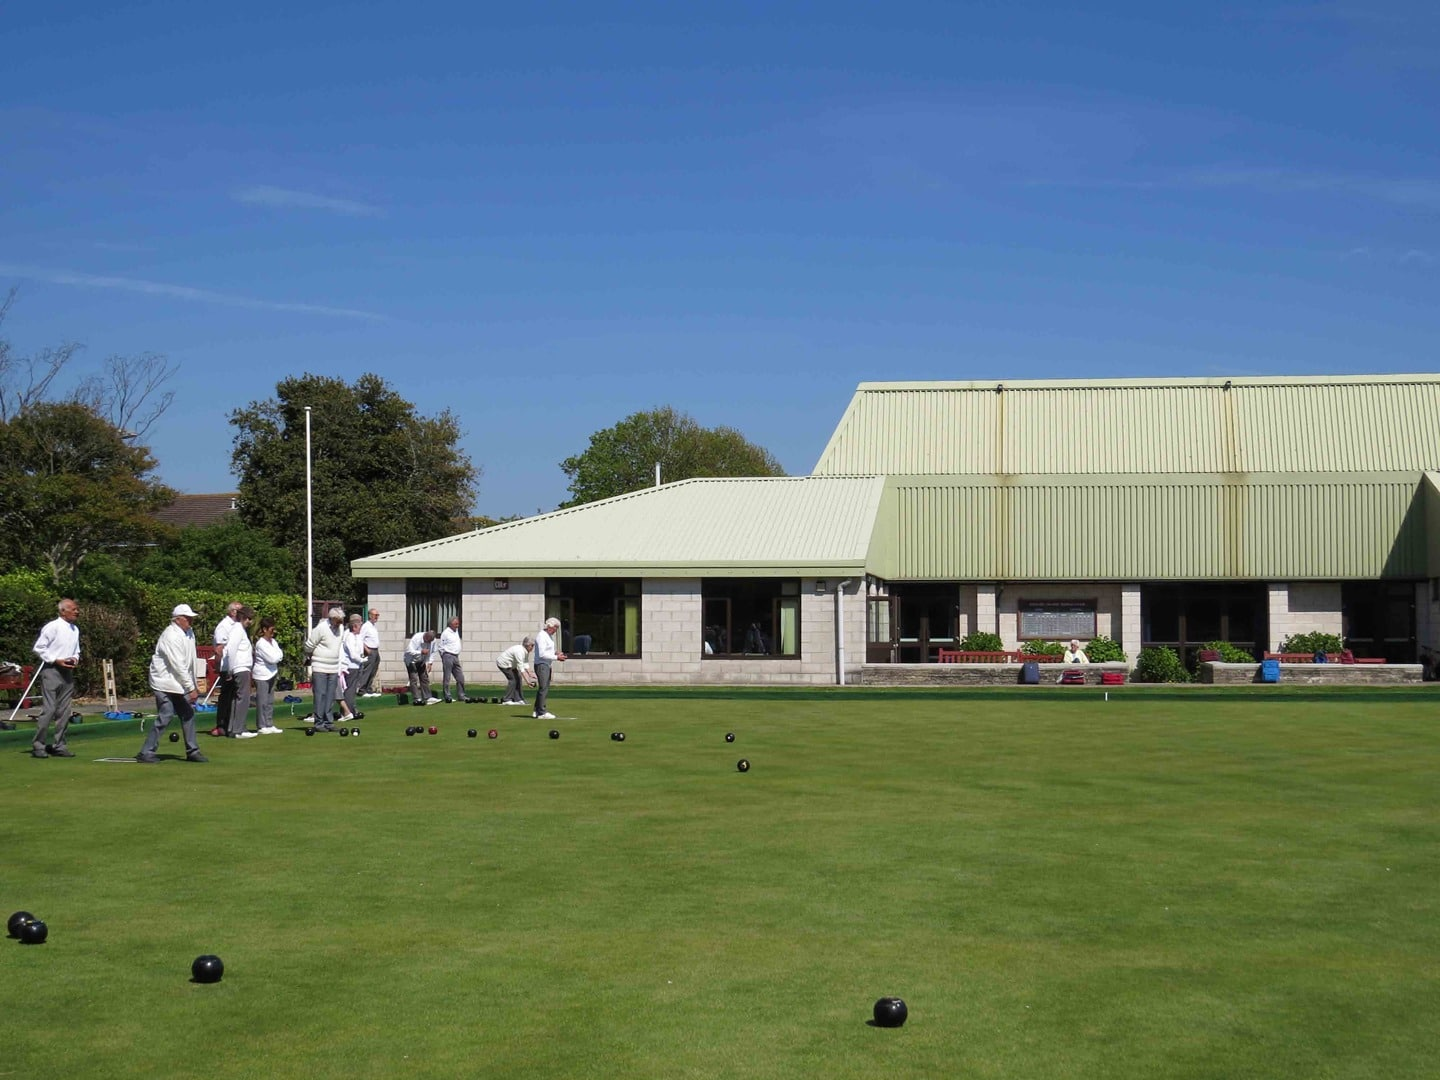 Women's bowling club takes down advice warning 'transsexuals' not to 'vamp up' after backlash over 'archaic' policy